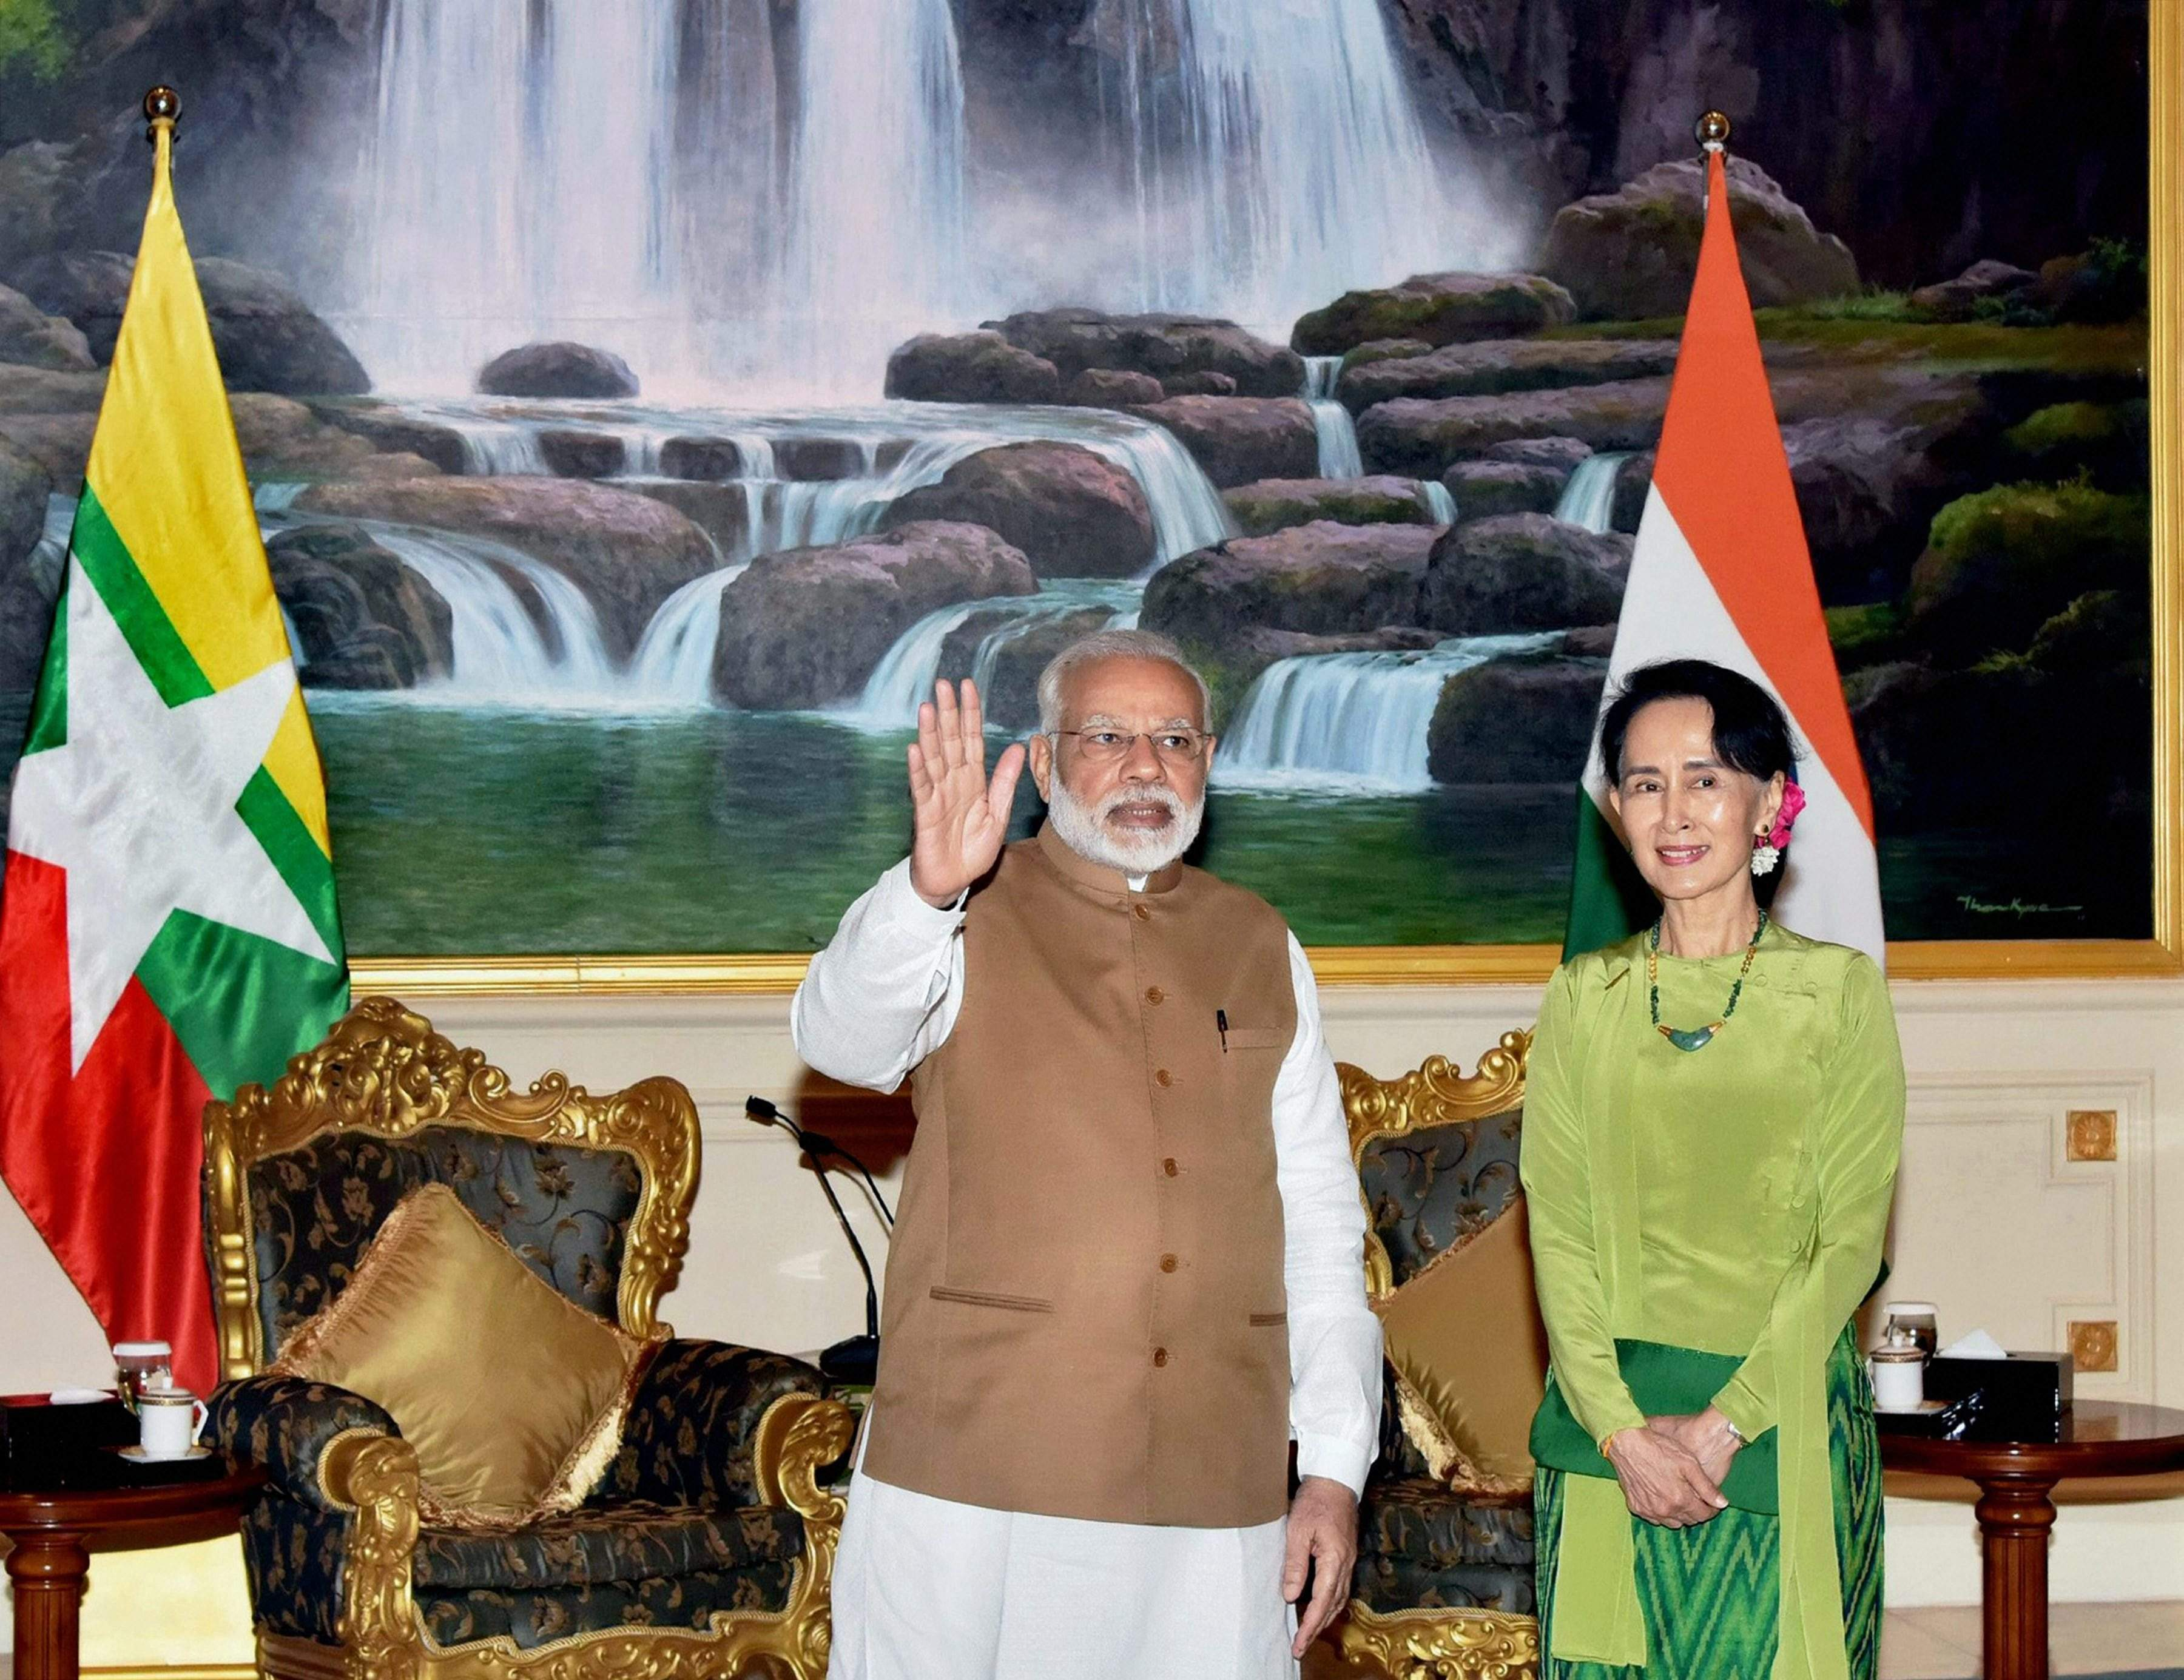 Image of PM Narendra Modi With The State Counsellor of Myanmar